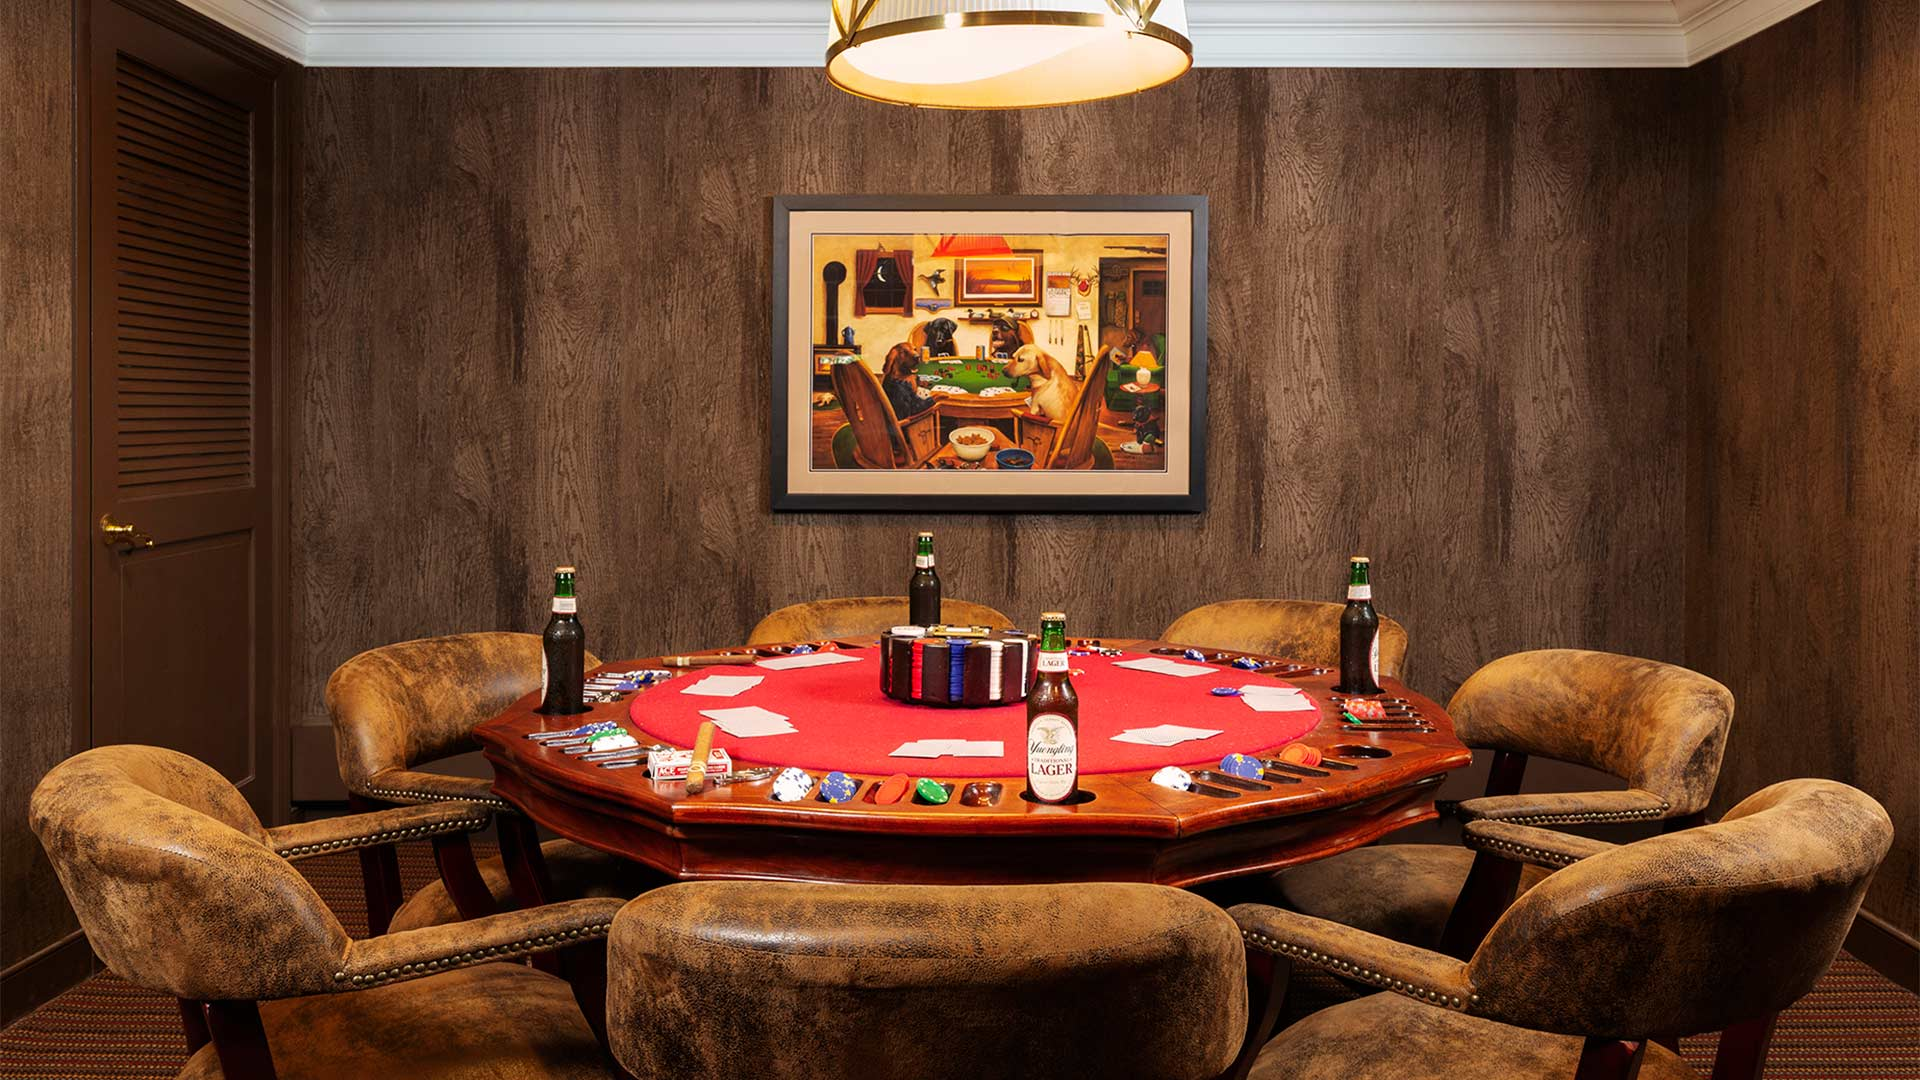 interior shot of a card room. The room has dark wood panels on the walls and the poker table is round and red. There are several plush chairs around the table